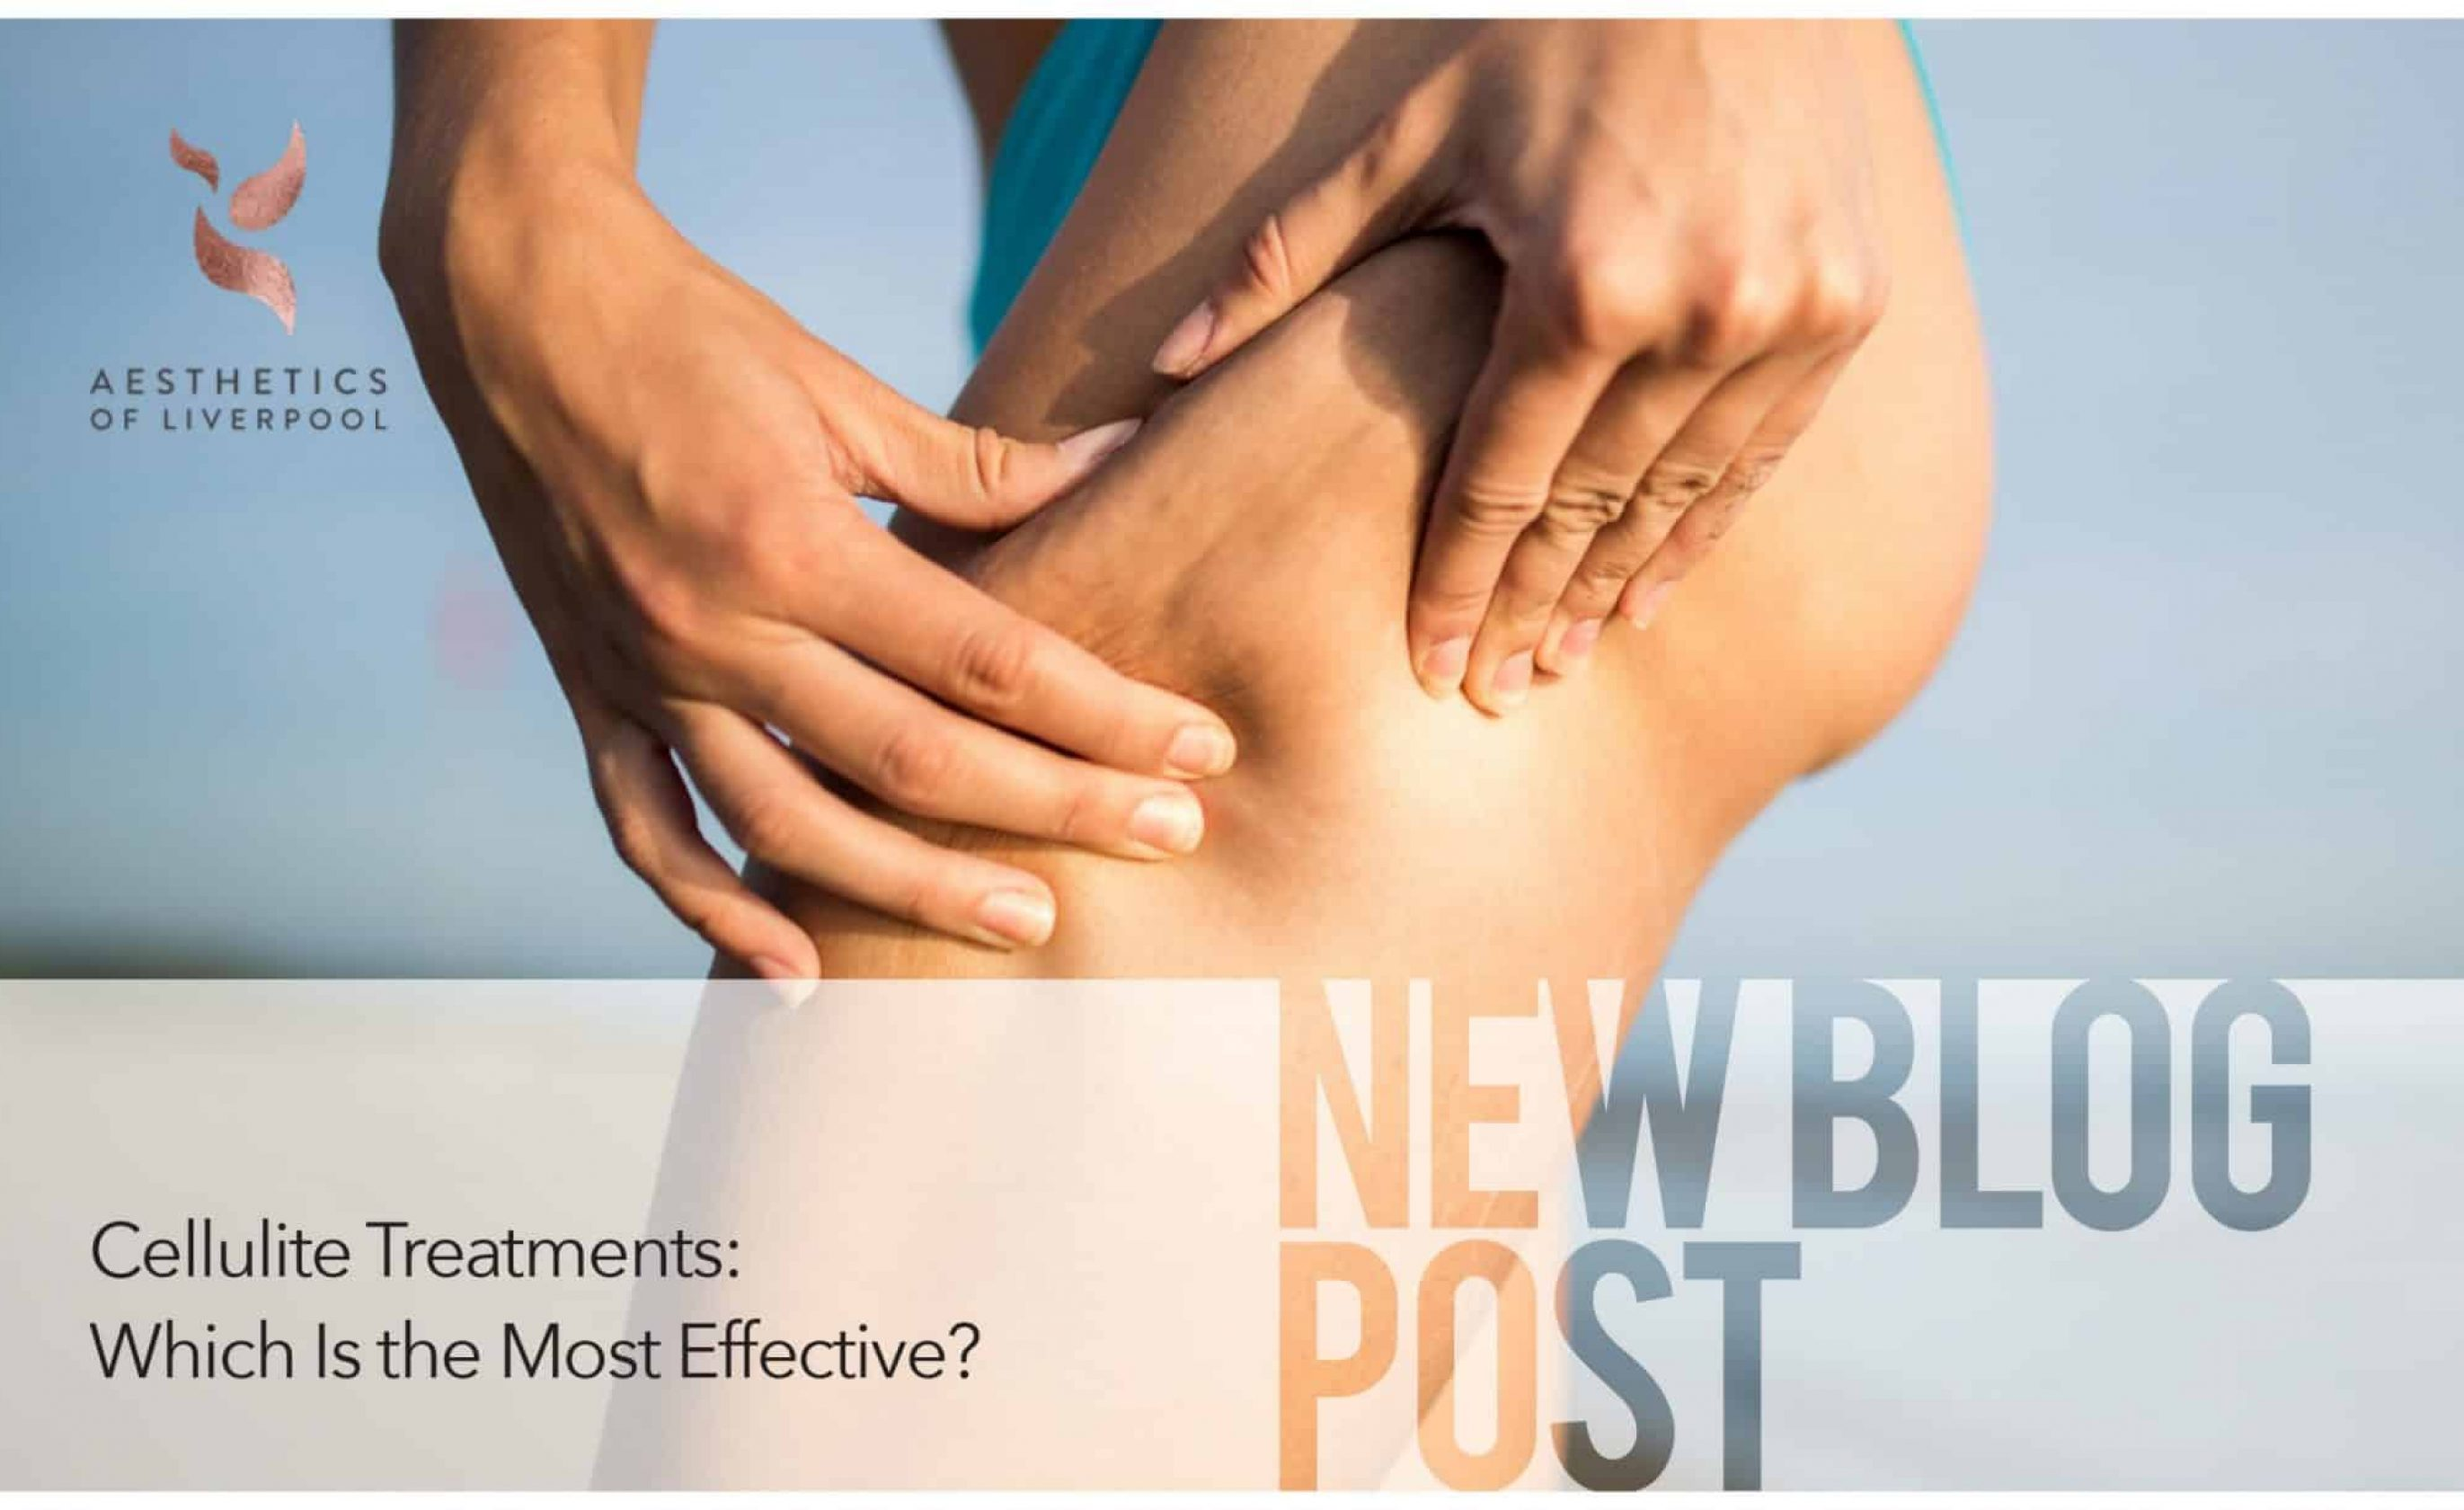 Cellulite Treatments: Which Is The Most Effective?